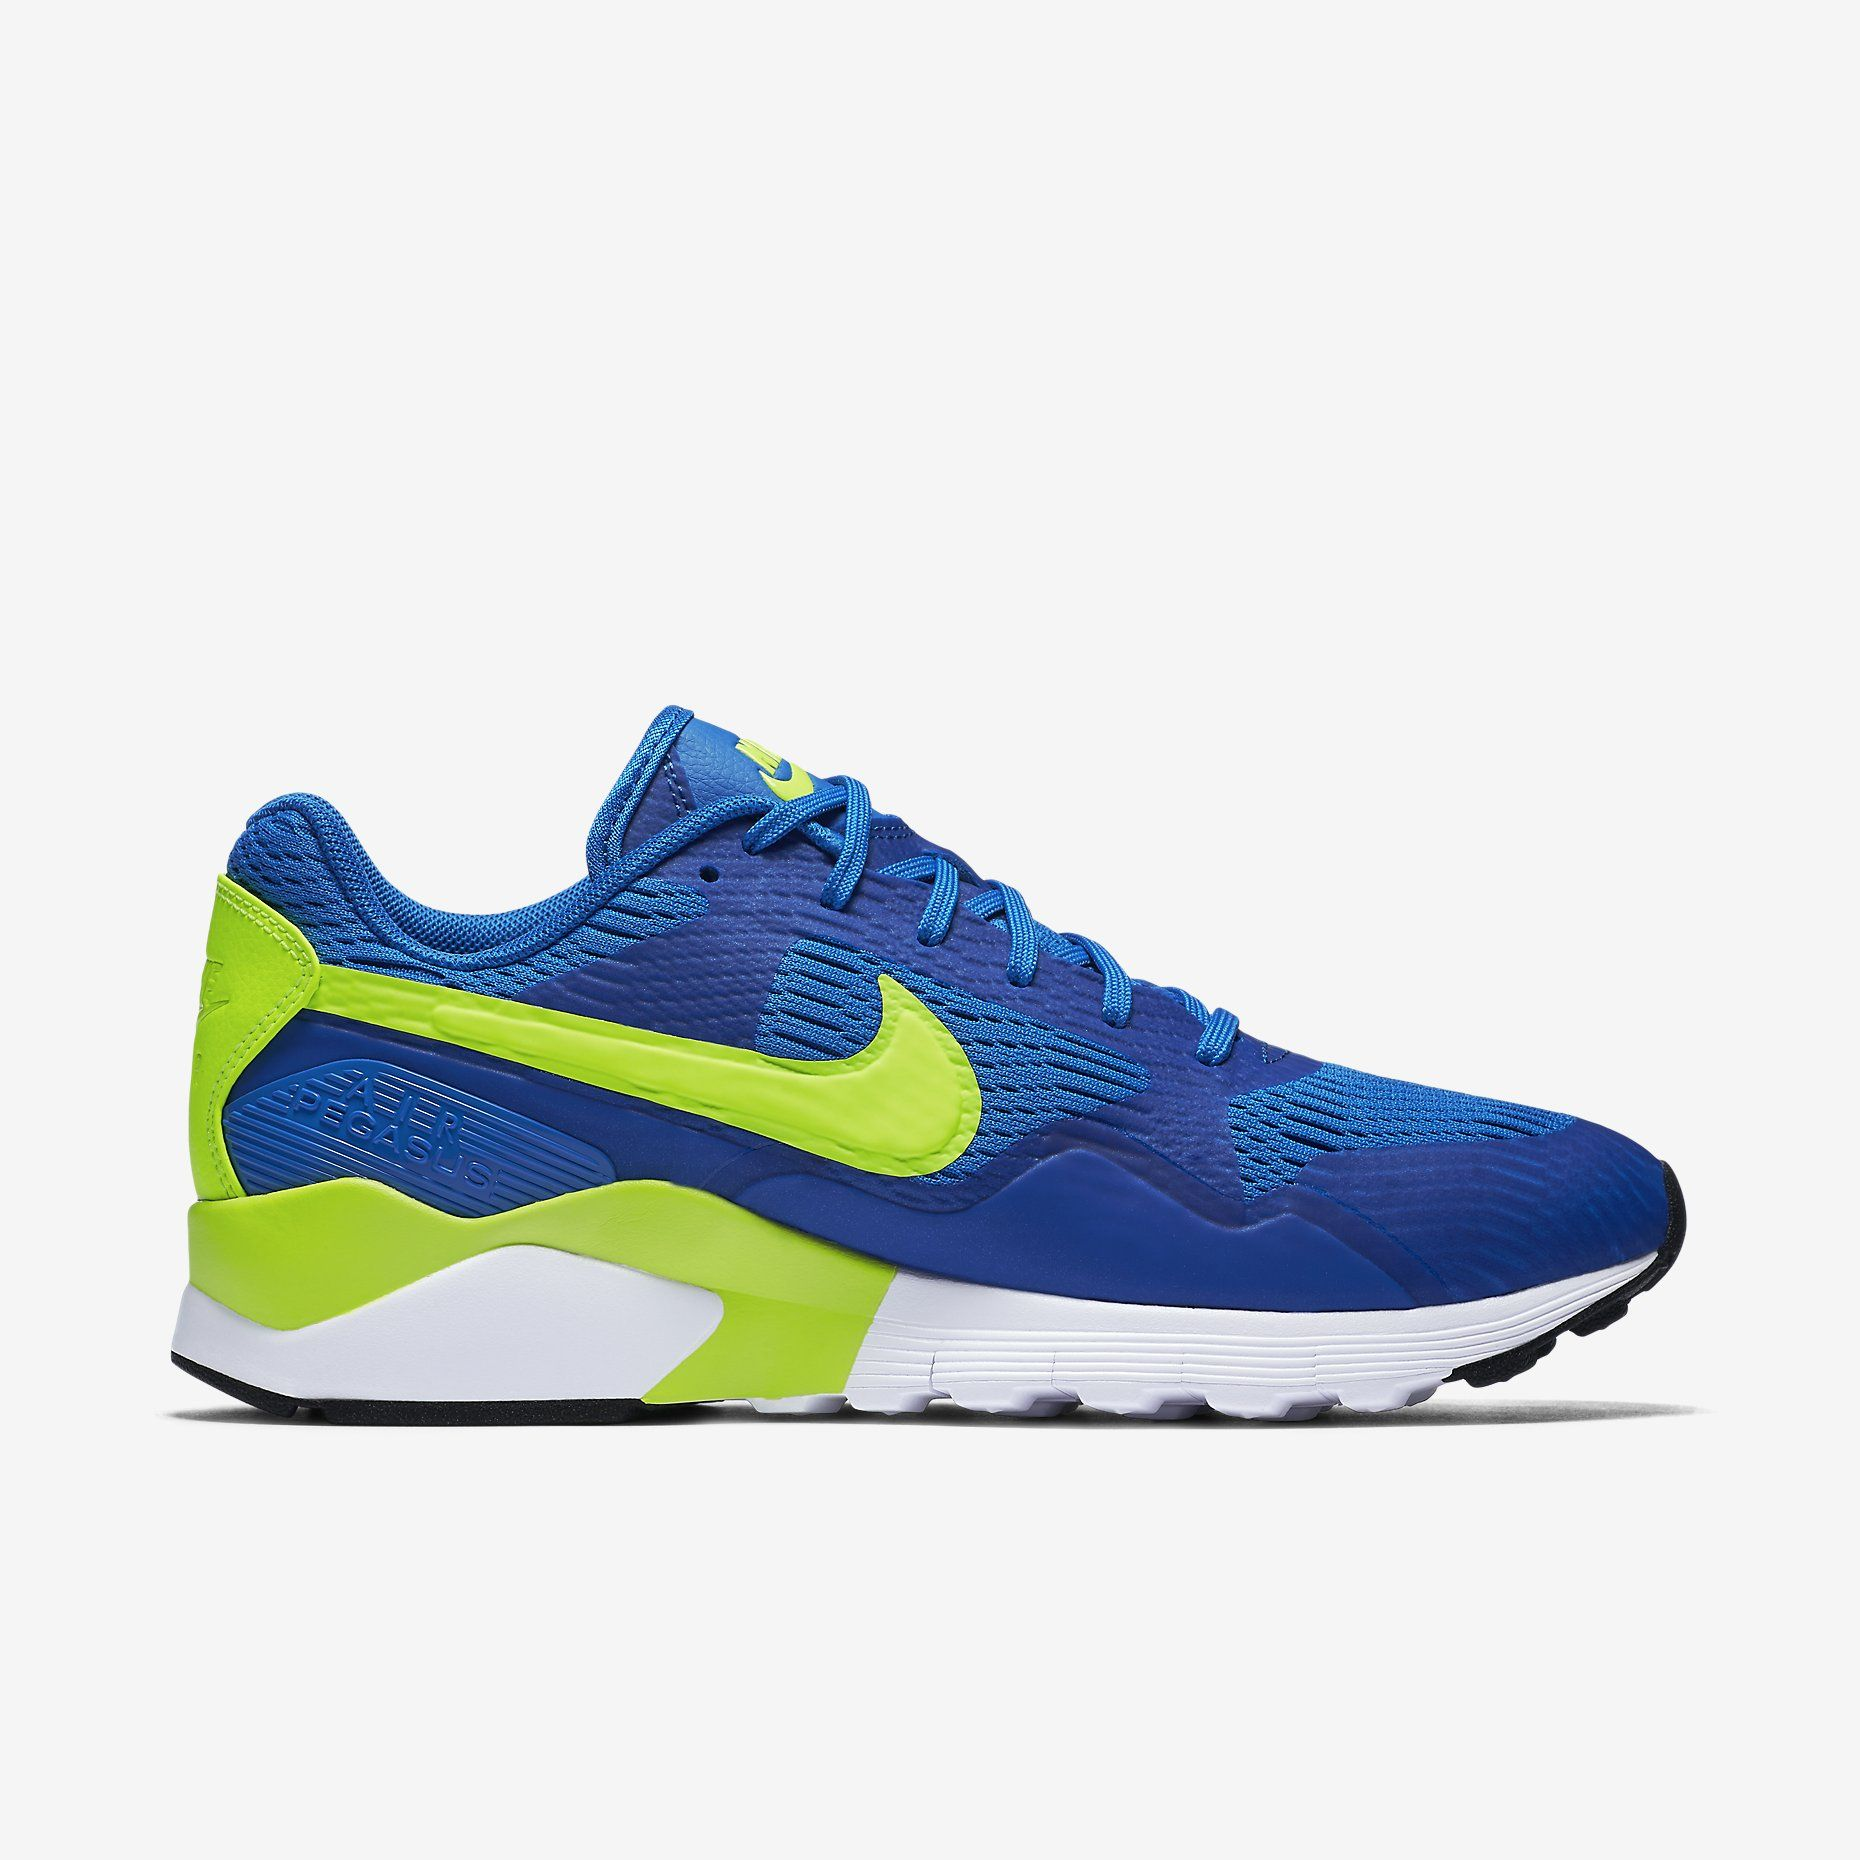 74613c0ada1634 ... order shop nike for shoes clothing gear at nike 766dc 1e49f